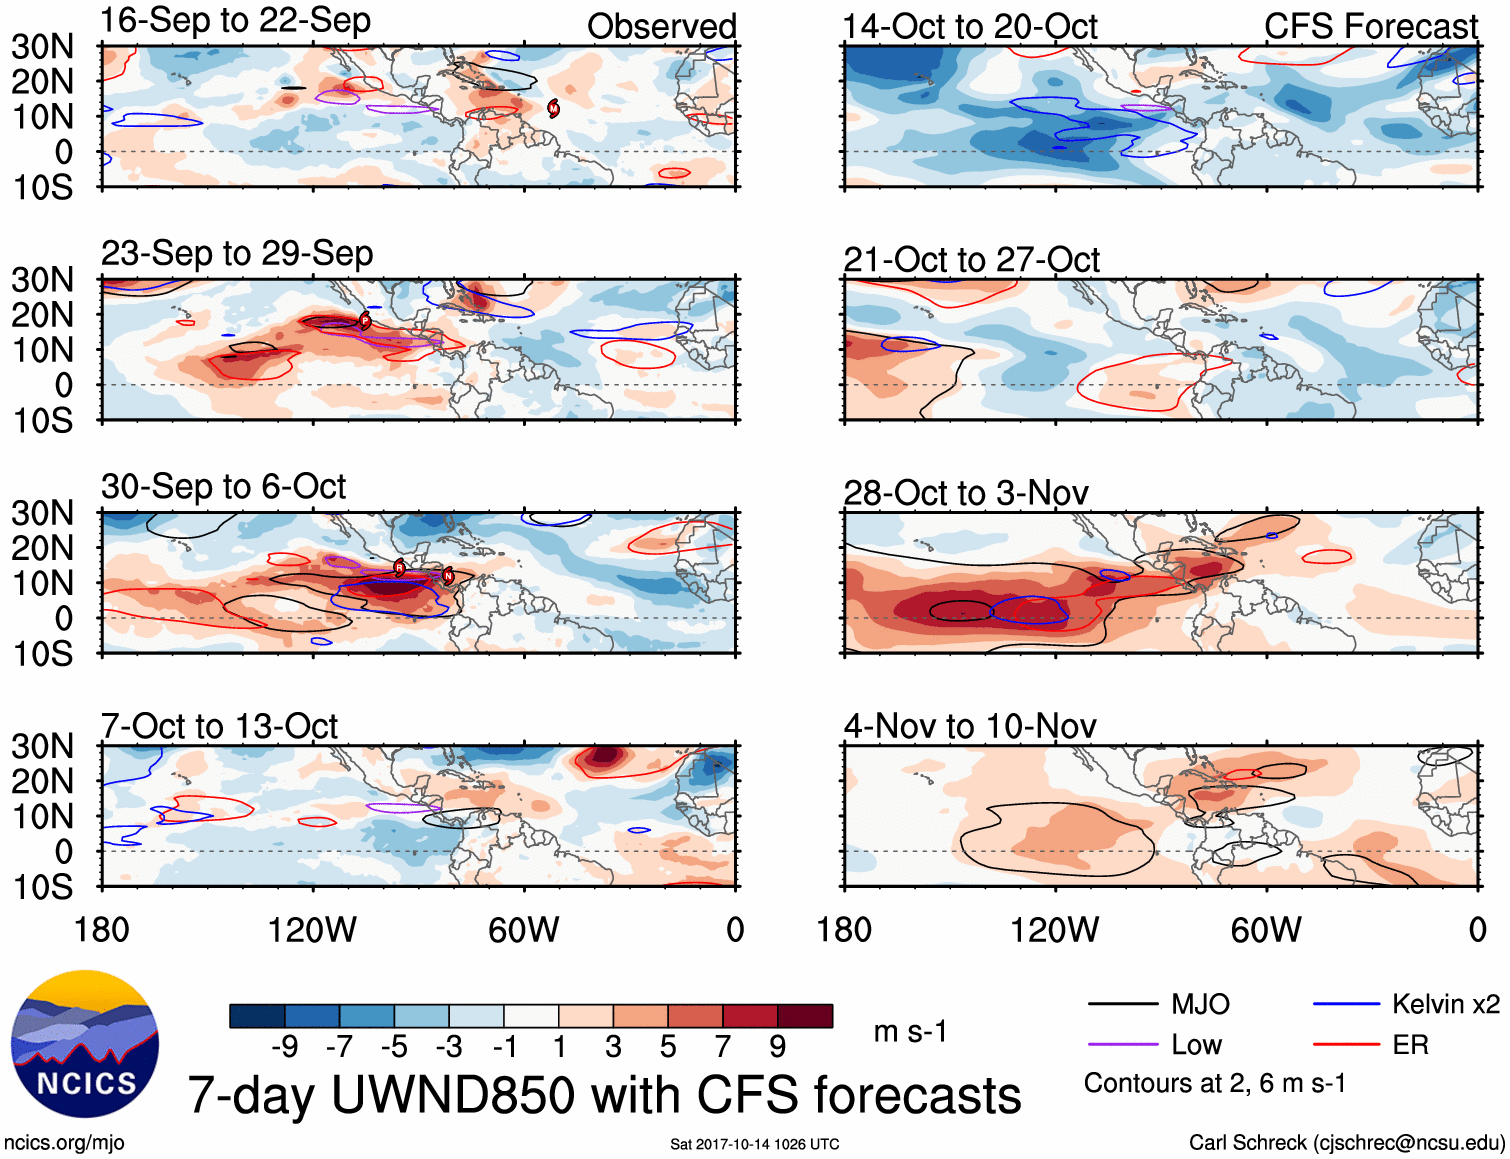 CFS forecasts in late October into early November showing a strong westerly wind burst, which could directly oppose the La Nina's momentum (Carl Schreck).